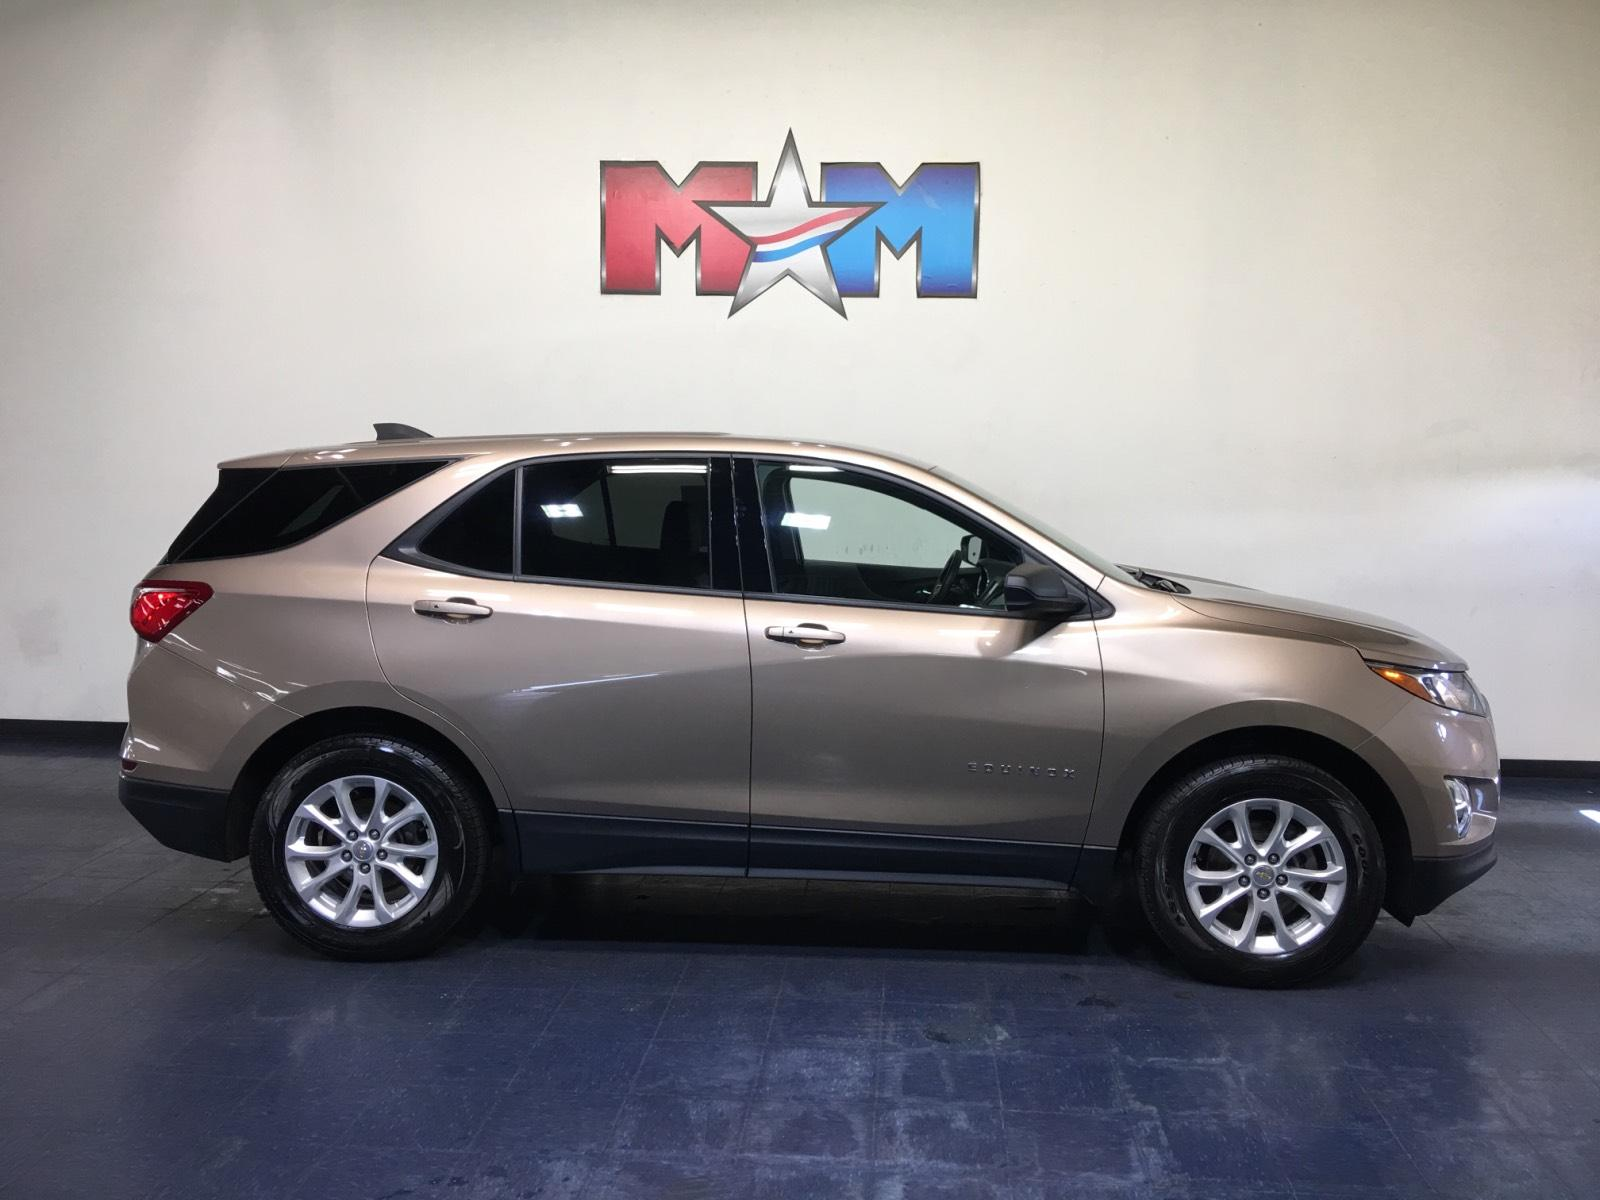 Pre-Owned 2018 Chevrolet Equinox AWD 4dr LS w/1LS